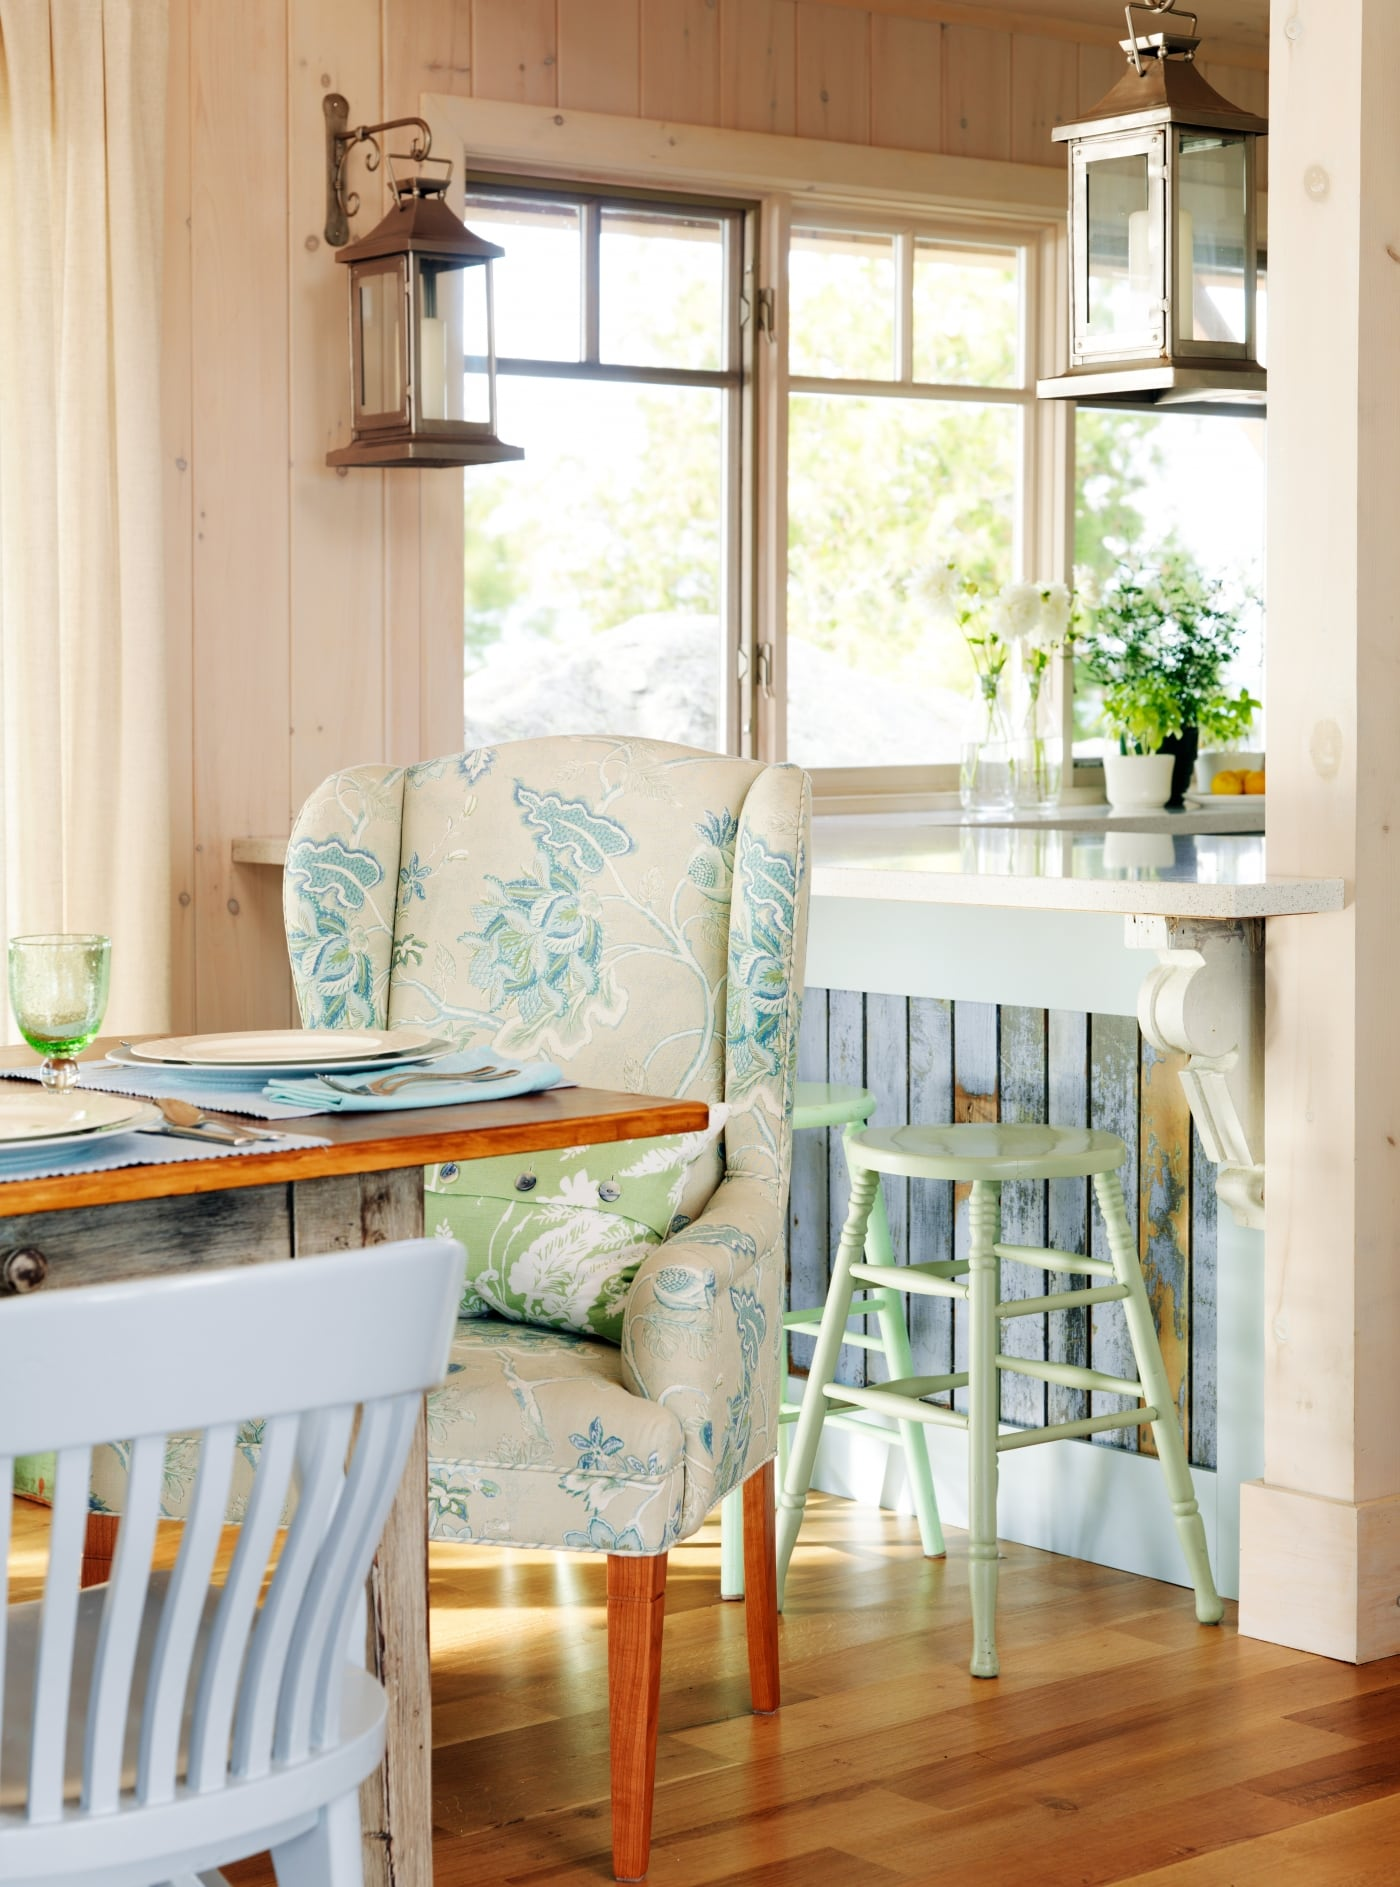 Floral patterned wing back chair and rustic planked breakfast bar with weathered stools